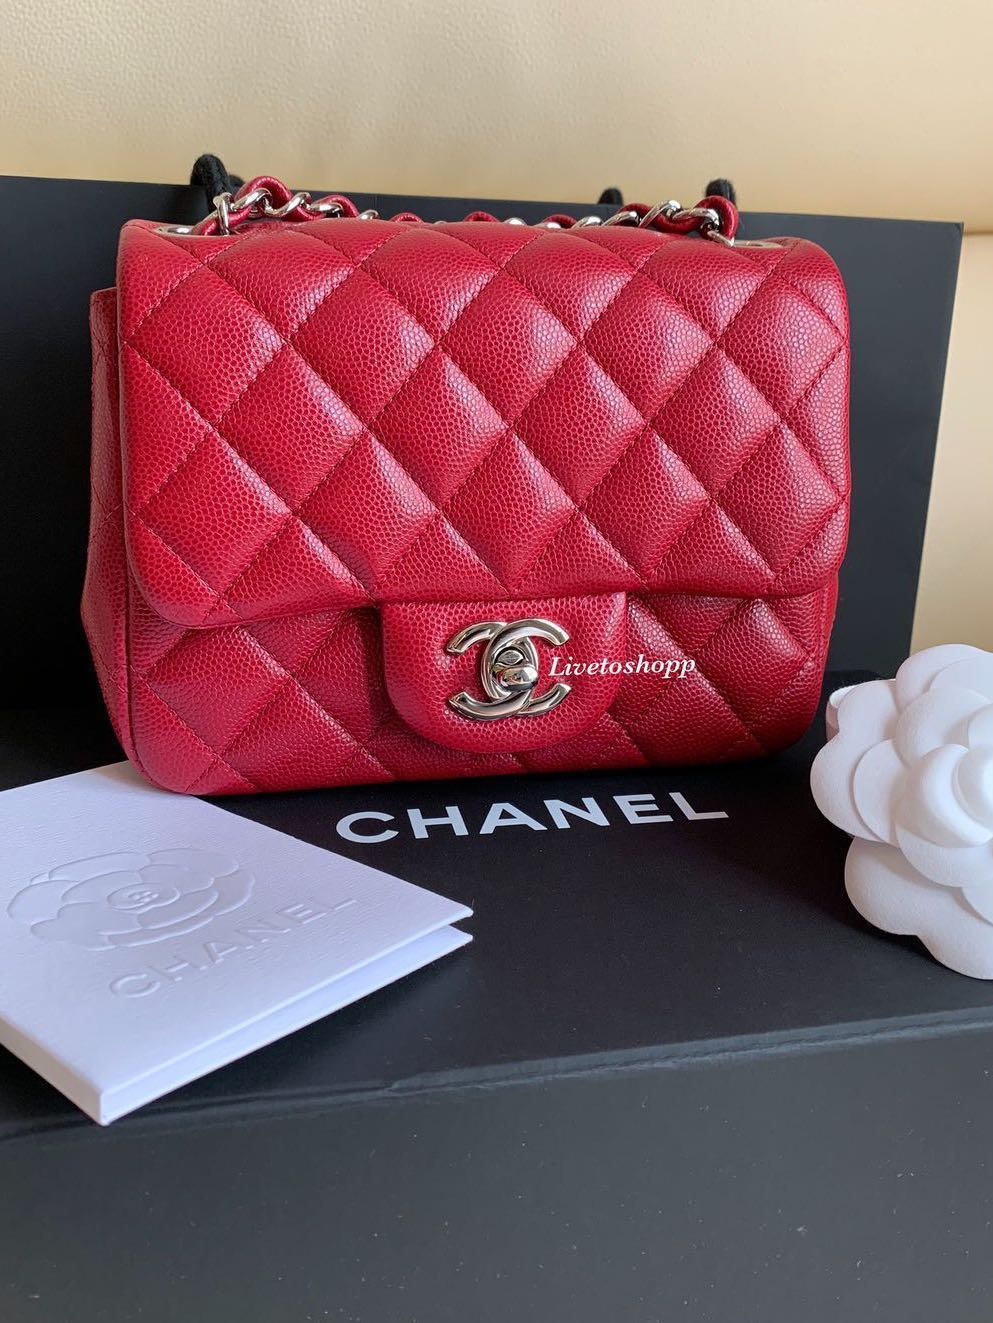 bd38895fccf7e8 Chanel Mini Square Bag Caviar Leather SHW, Luxury, Bags & Wallets, Handbags  on Carousell